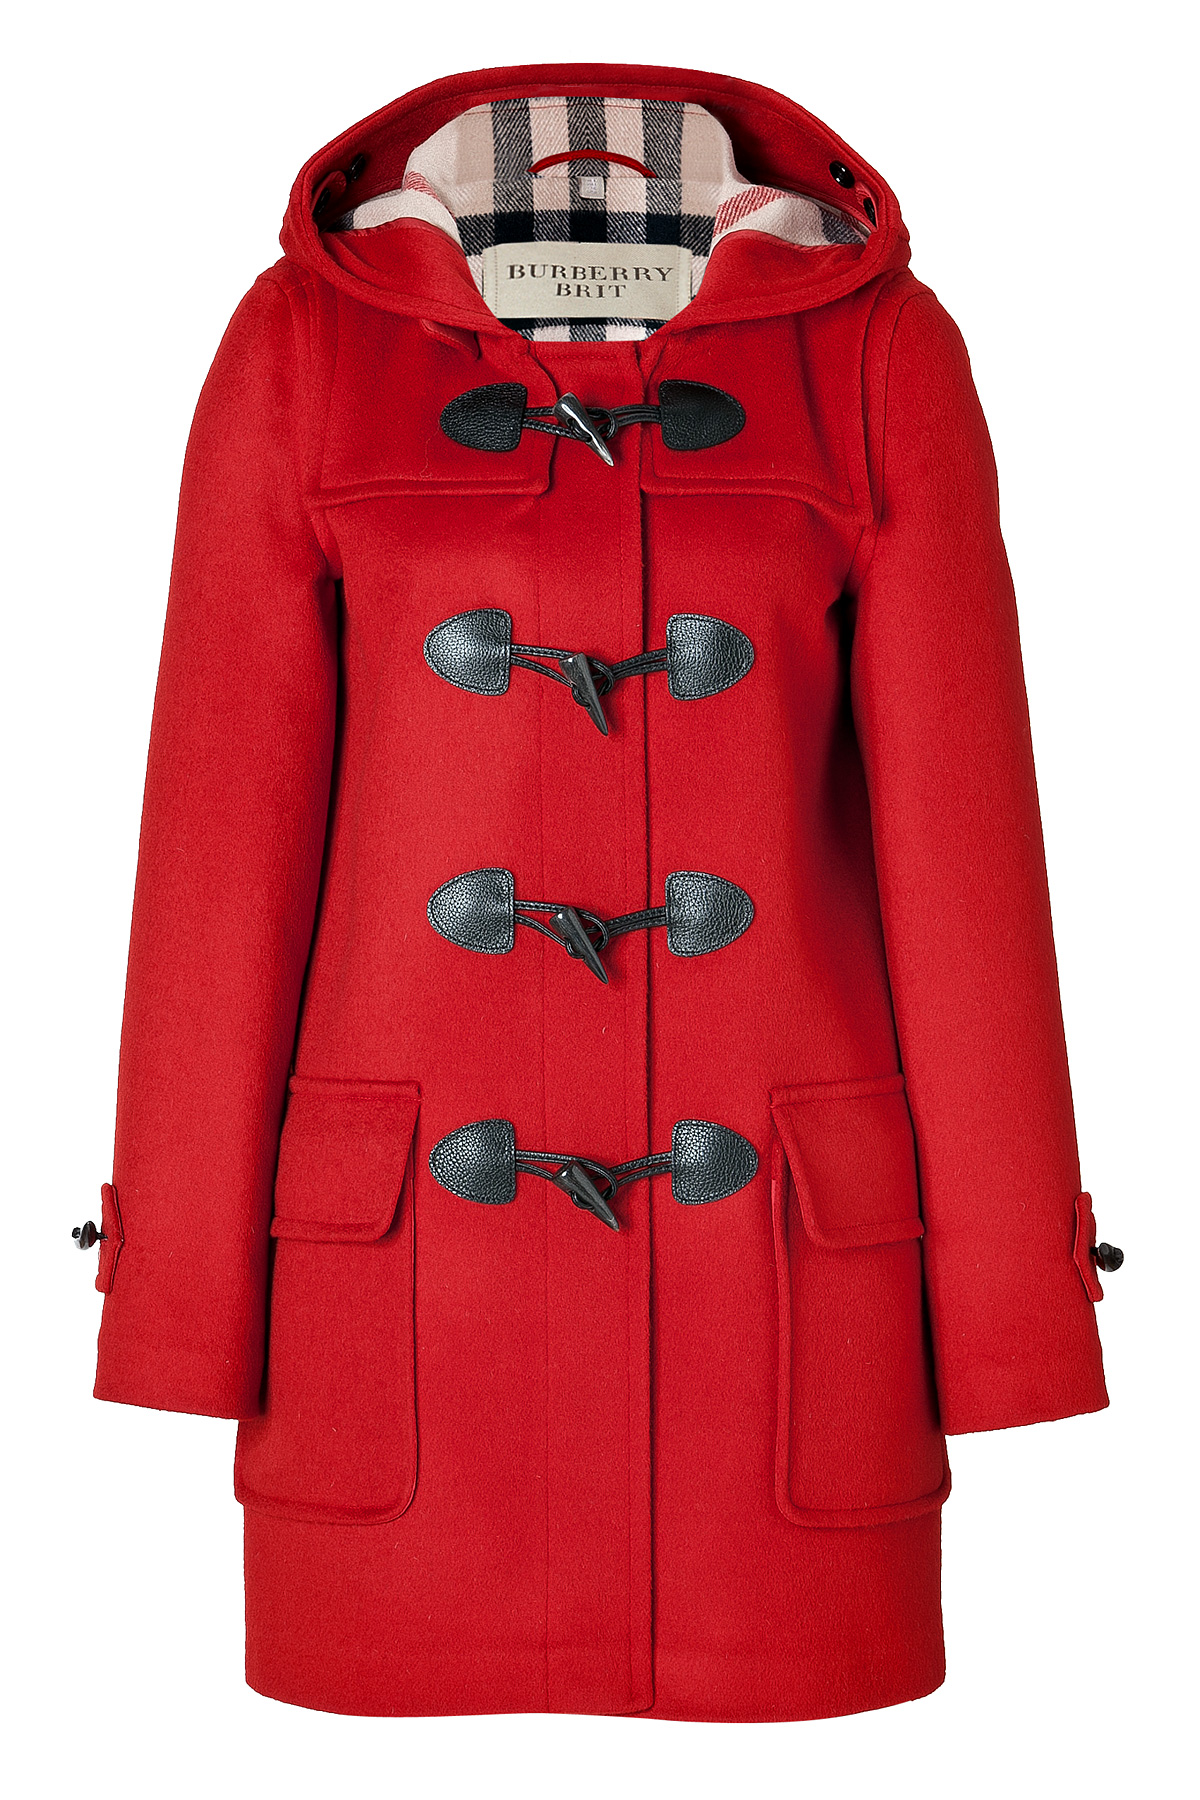 Burberry brit Wool Minstead Duffle Coat in Military Red in Red | Lyst